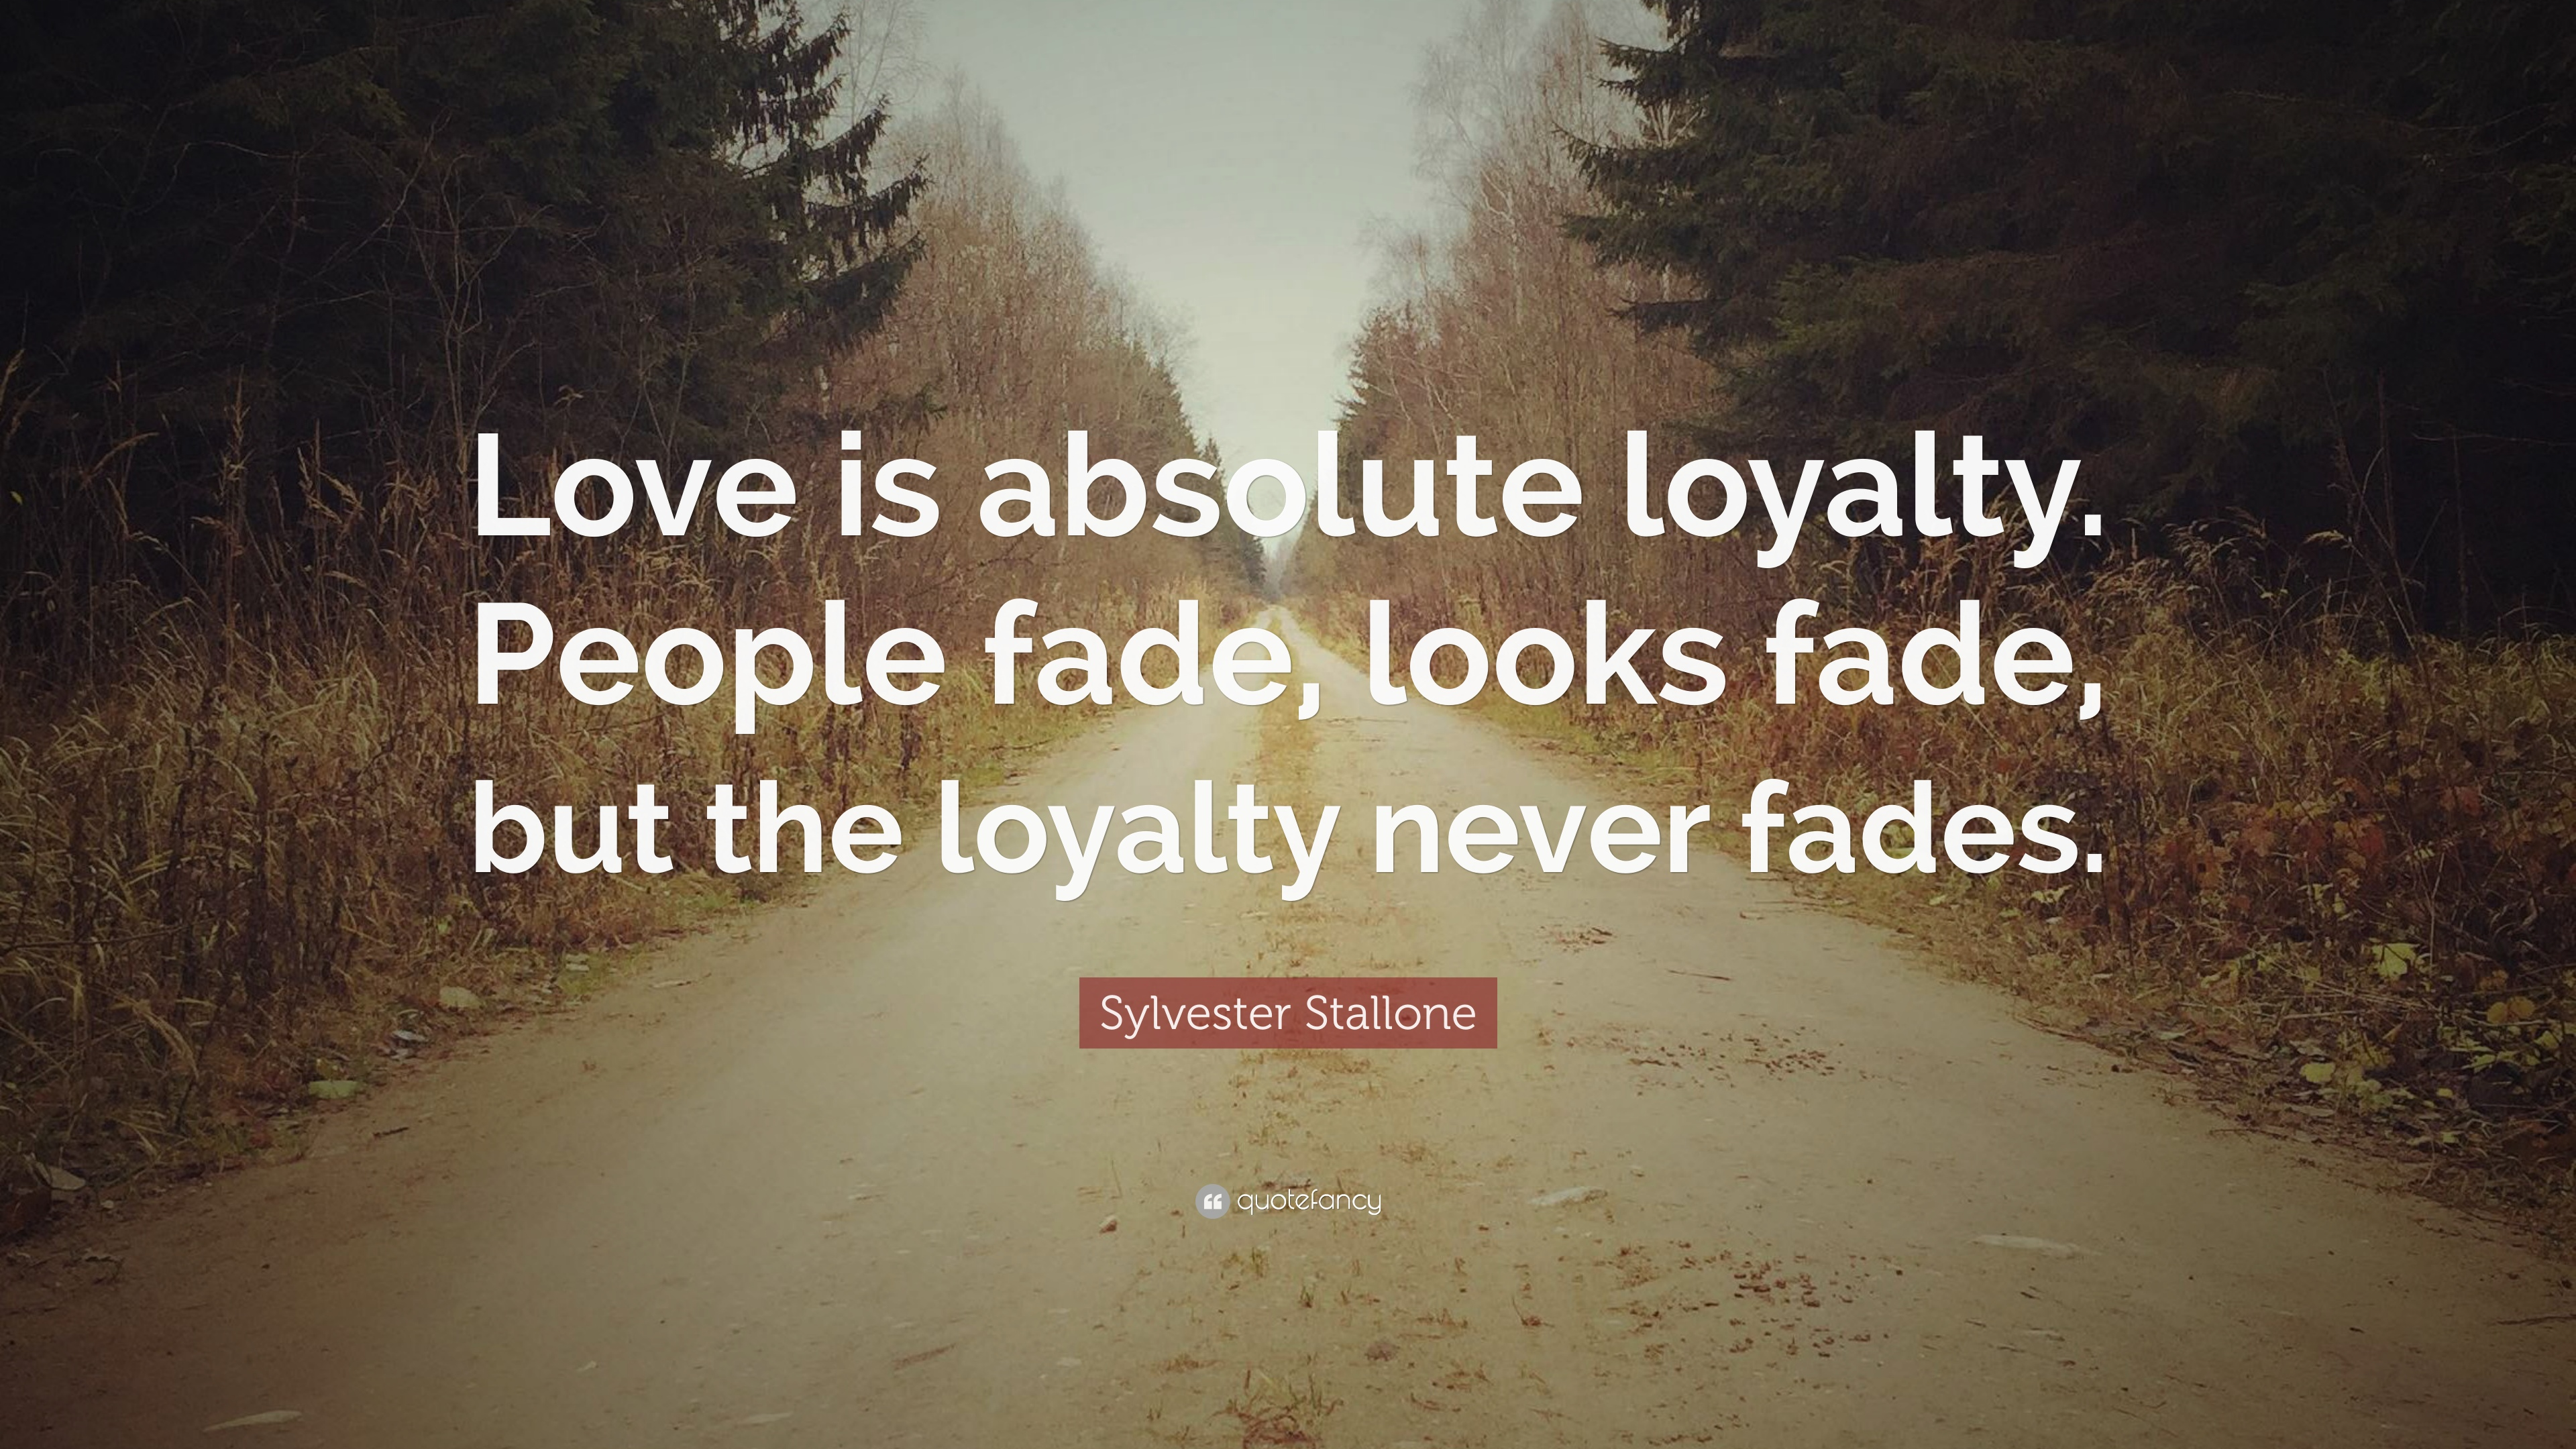 Quotes About Fading Love: Sylvester Stallone Quotes (100 Wallpapers)